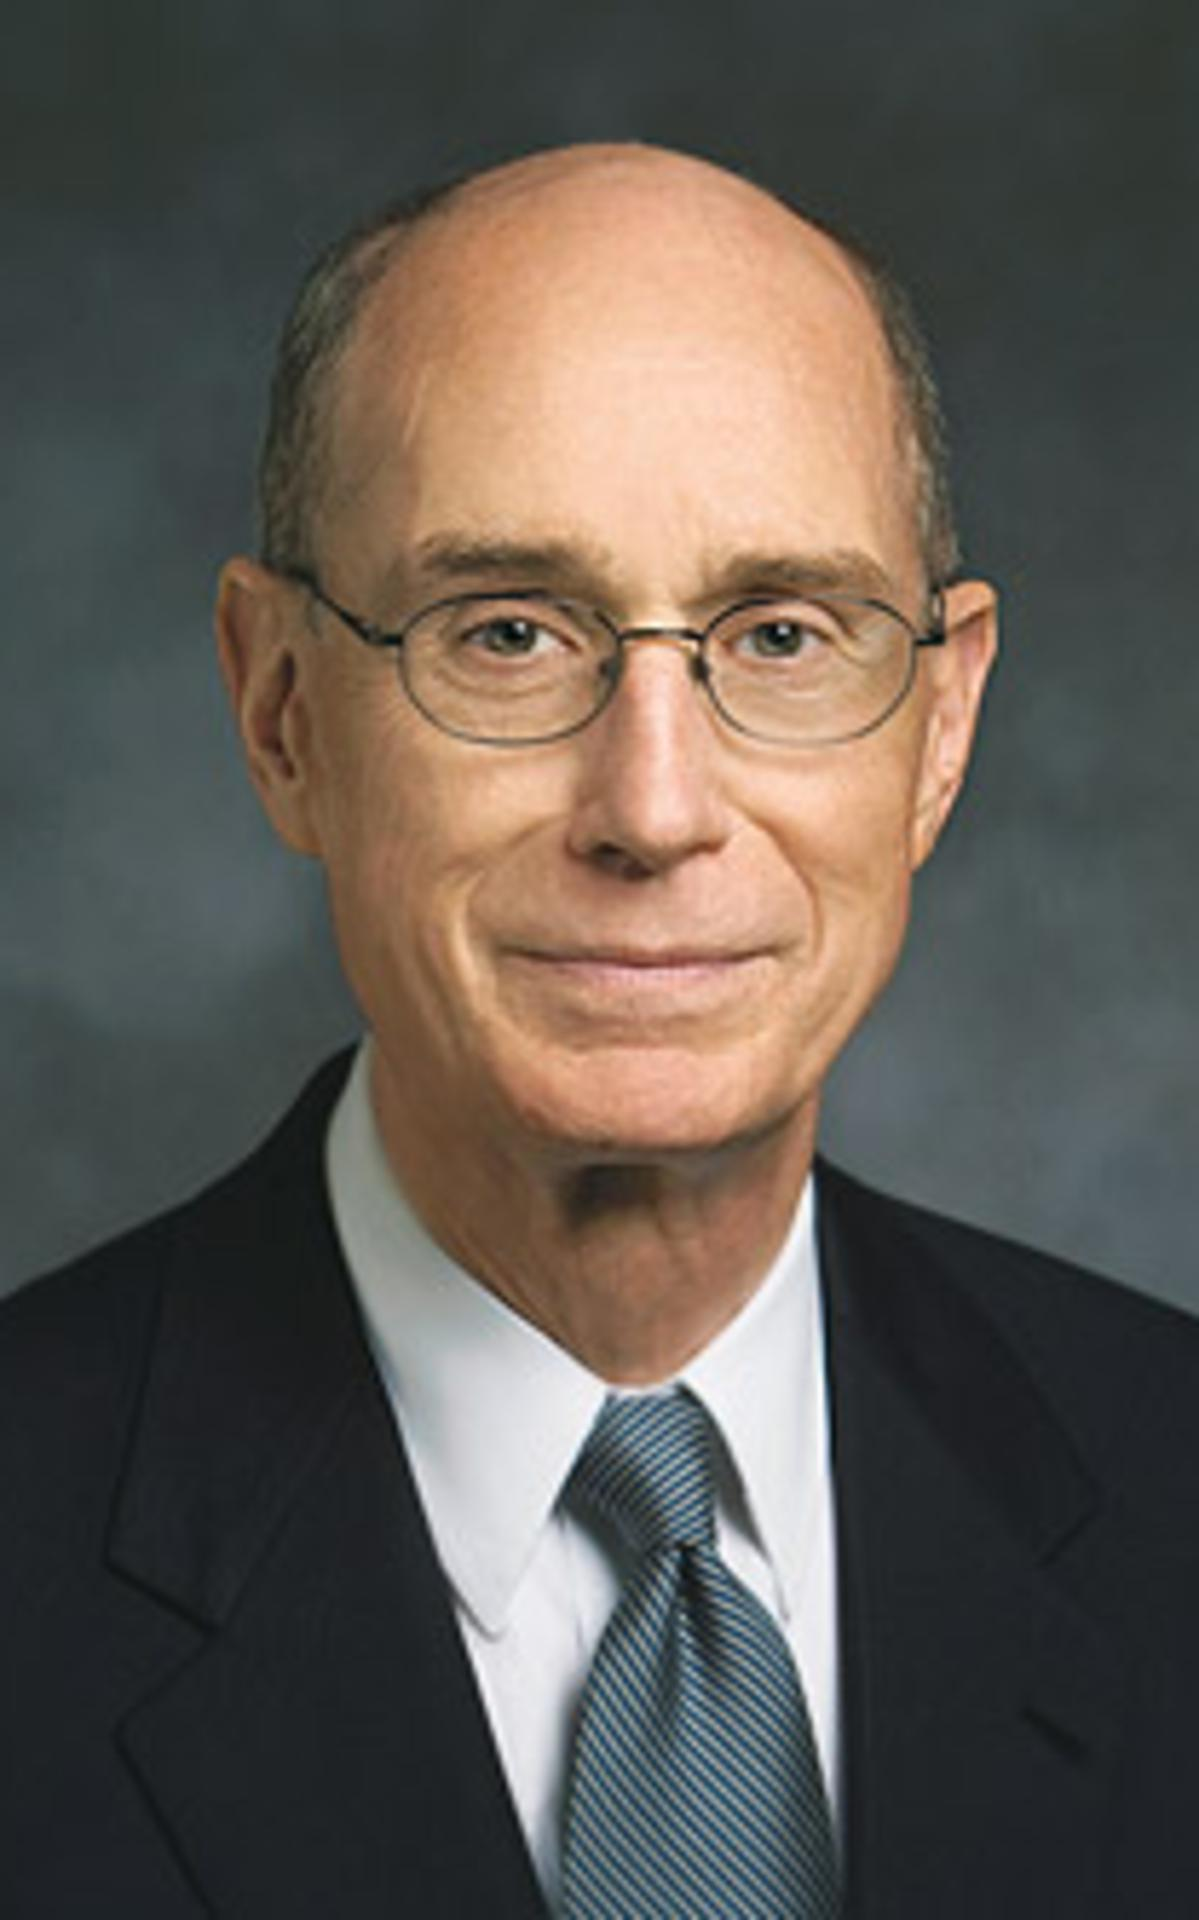 image of President Eyring